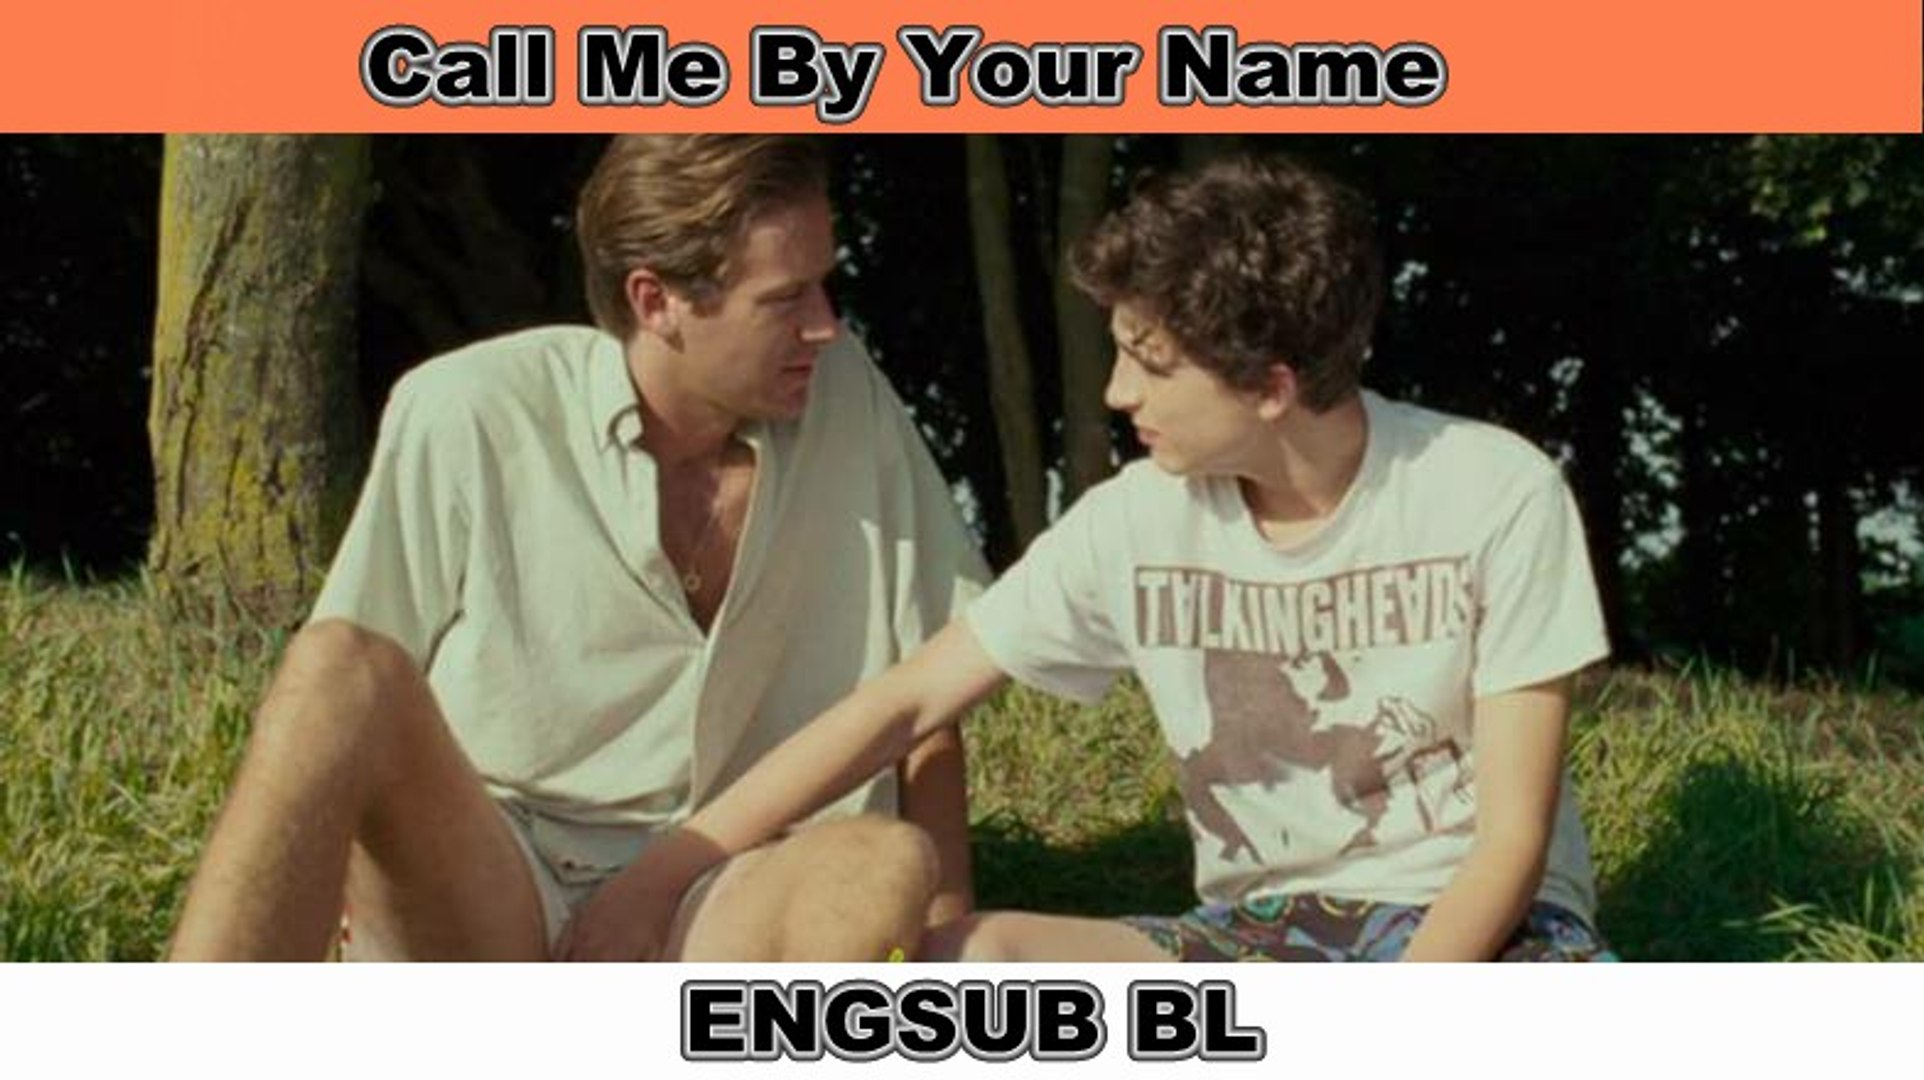 [Engsub BL] Call Me By Your Name Full Movie [1/3]